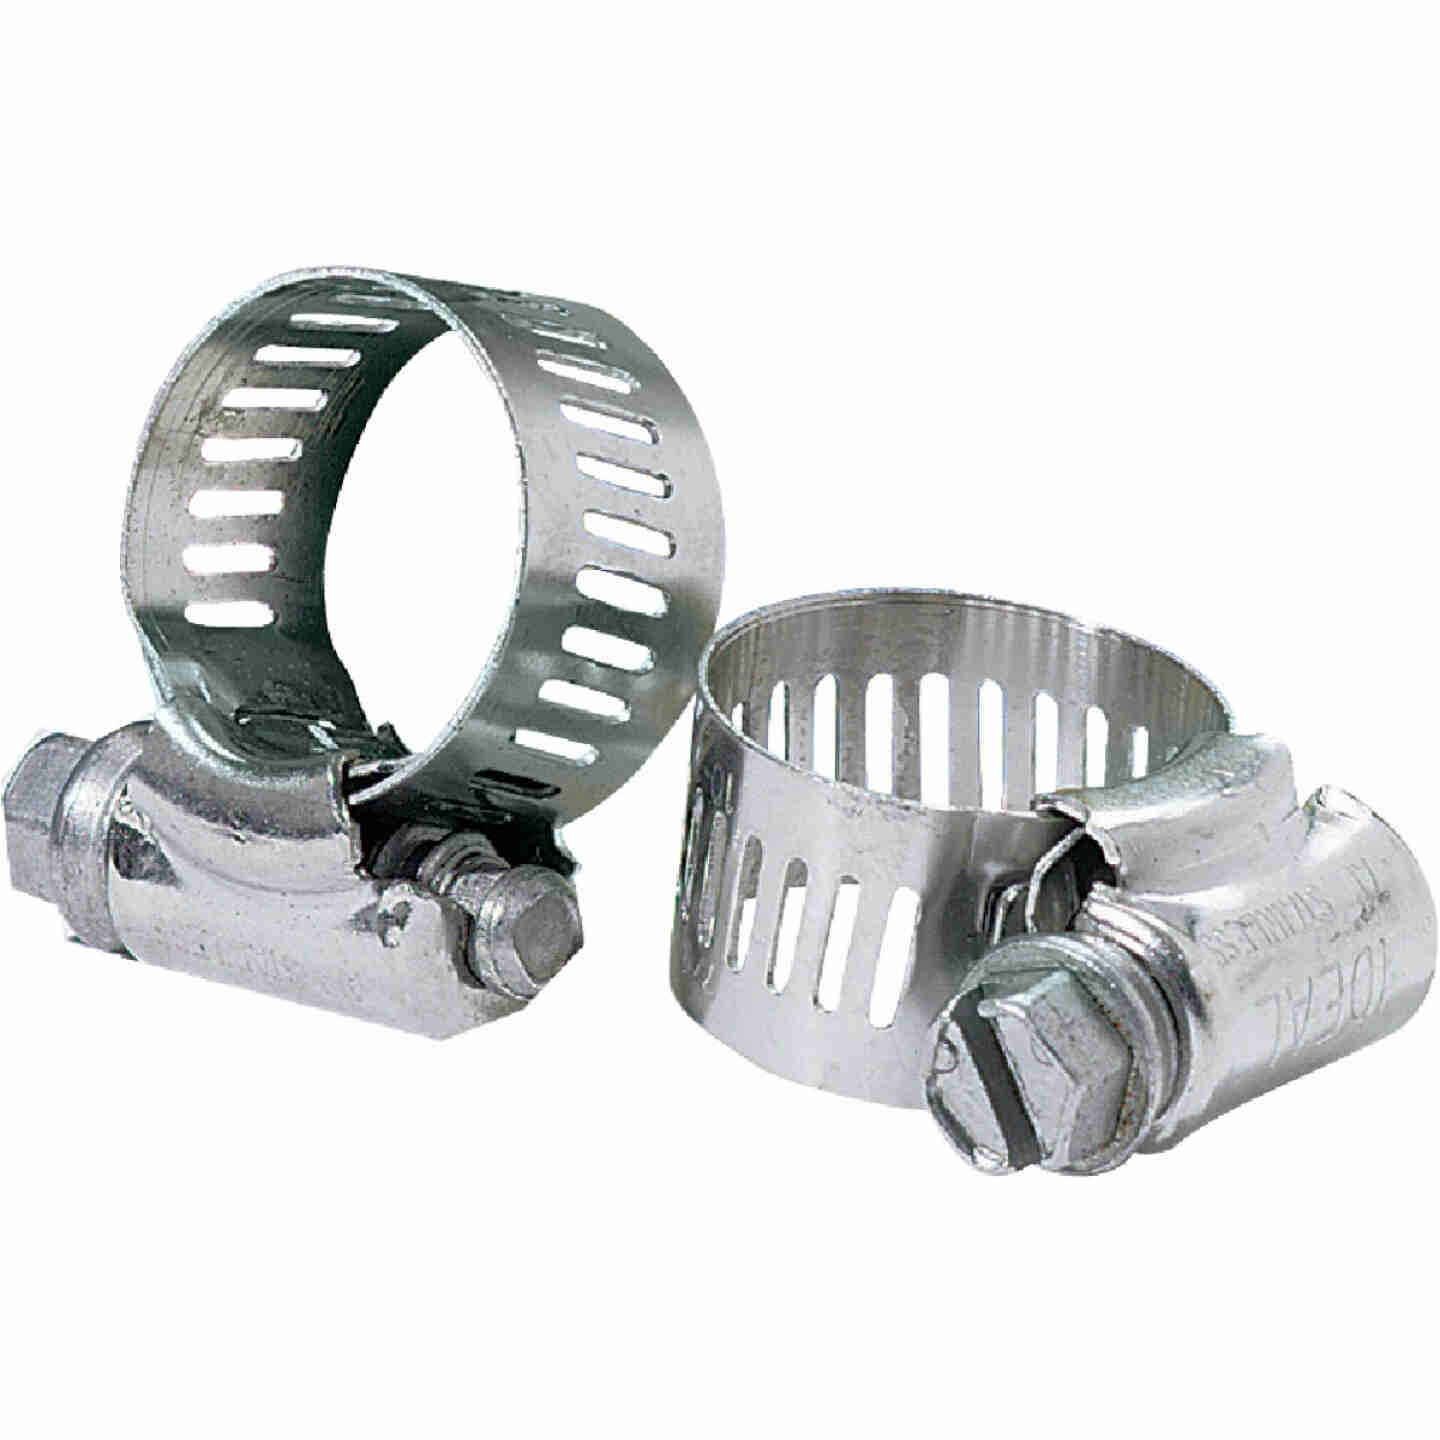 Ideal 3/4 In. - 1-3/4 In. 67 All Stainless Steel Hose Clamp Image 1